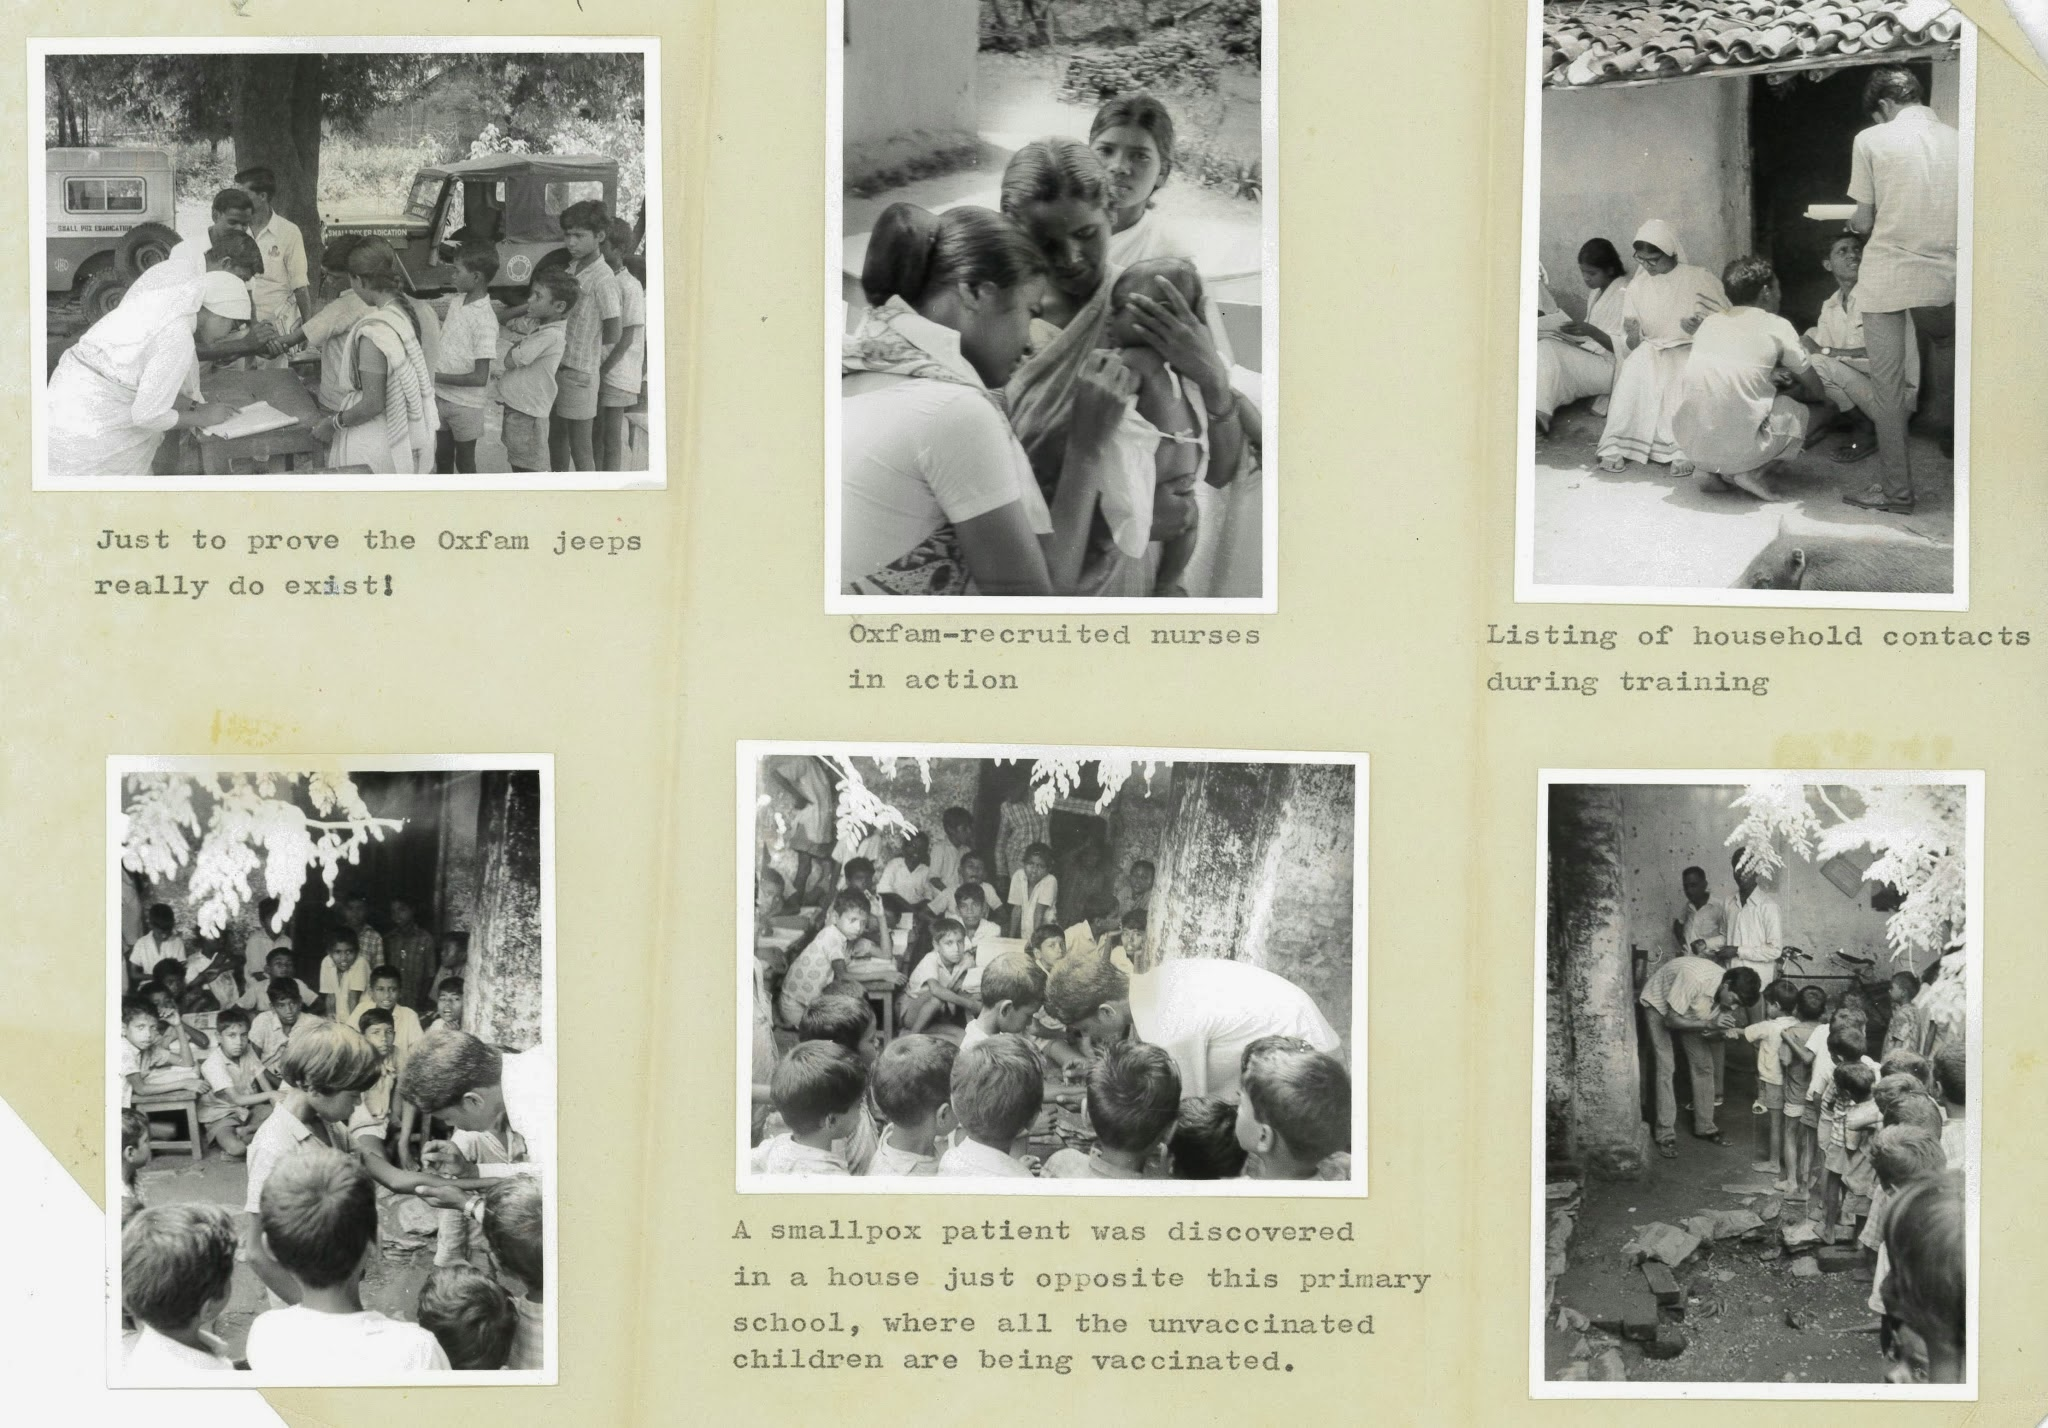 Oxfam jeeps and vaccination teams at work, 1974 (MS. Oxfam PRF BIH 014 Vol. 1 = Box 101)